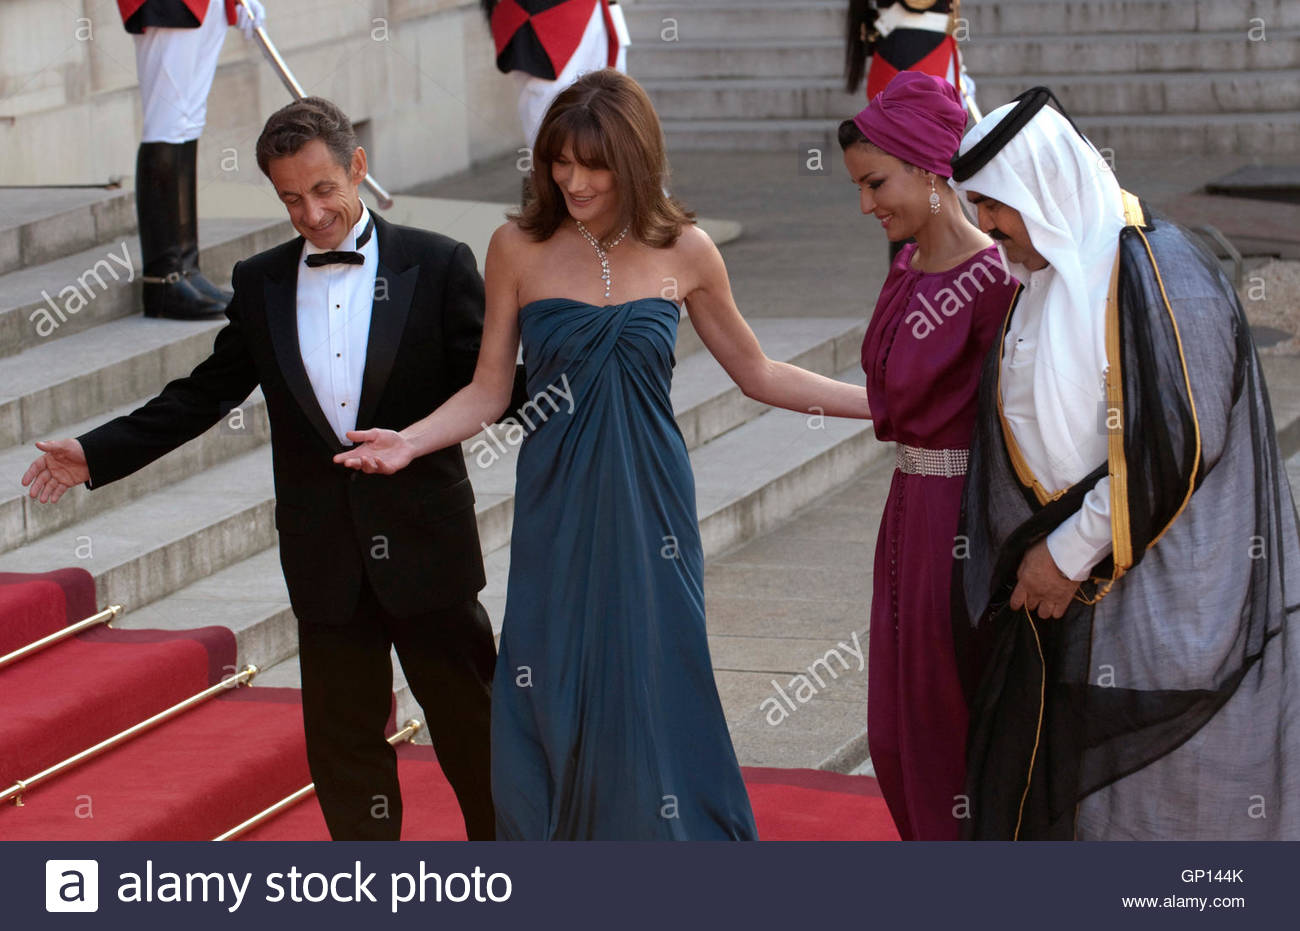 Qatar s emir sheikh hamad bin khalifa al thani r and his wife sheikha mozah